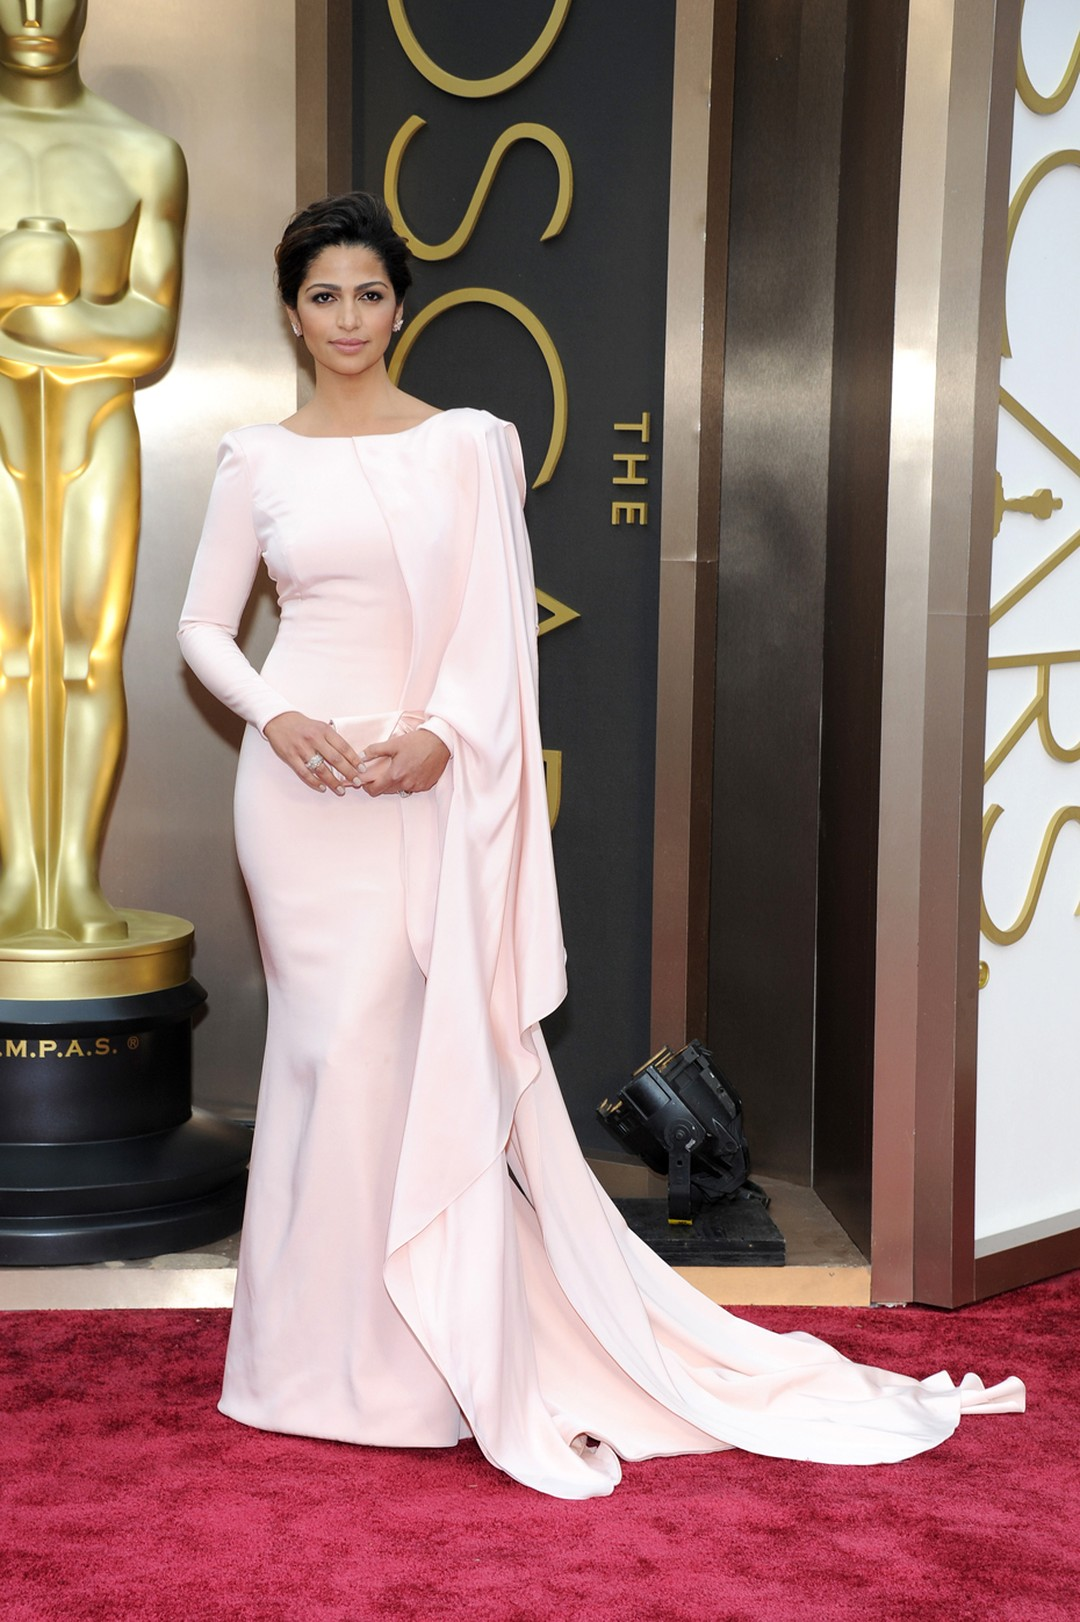 Camila Alves, wife of Oscar winner Matthew McConaughey, wore Lorraine Schwartz rose gold and pink diamond earrings with a rose gold and diamond ring on the Oscars red carpet